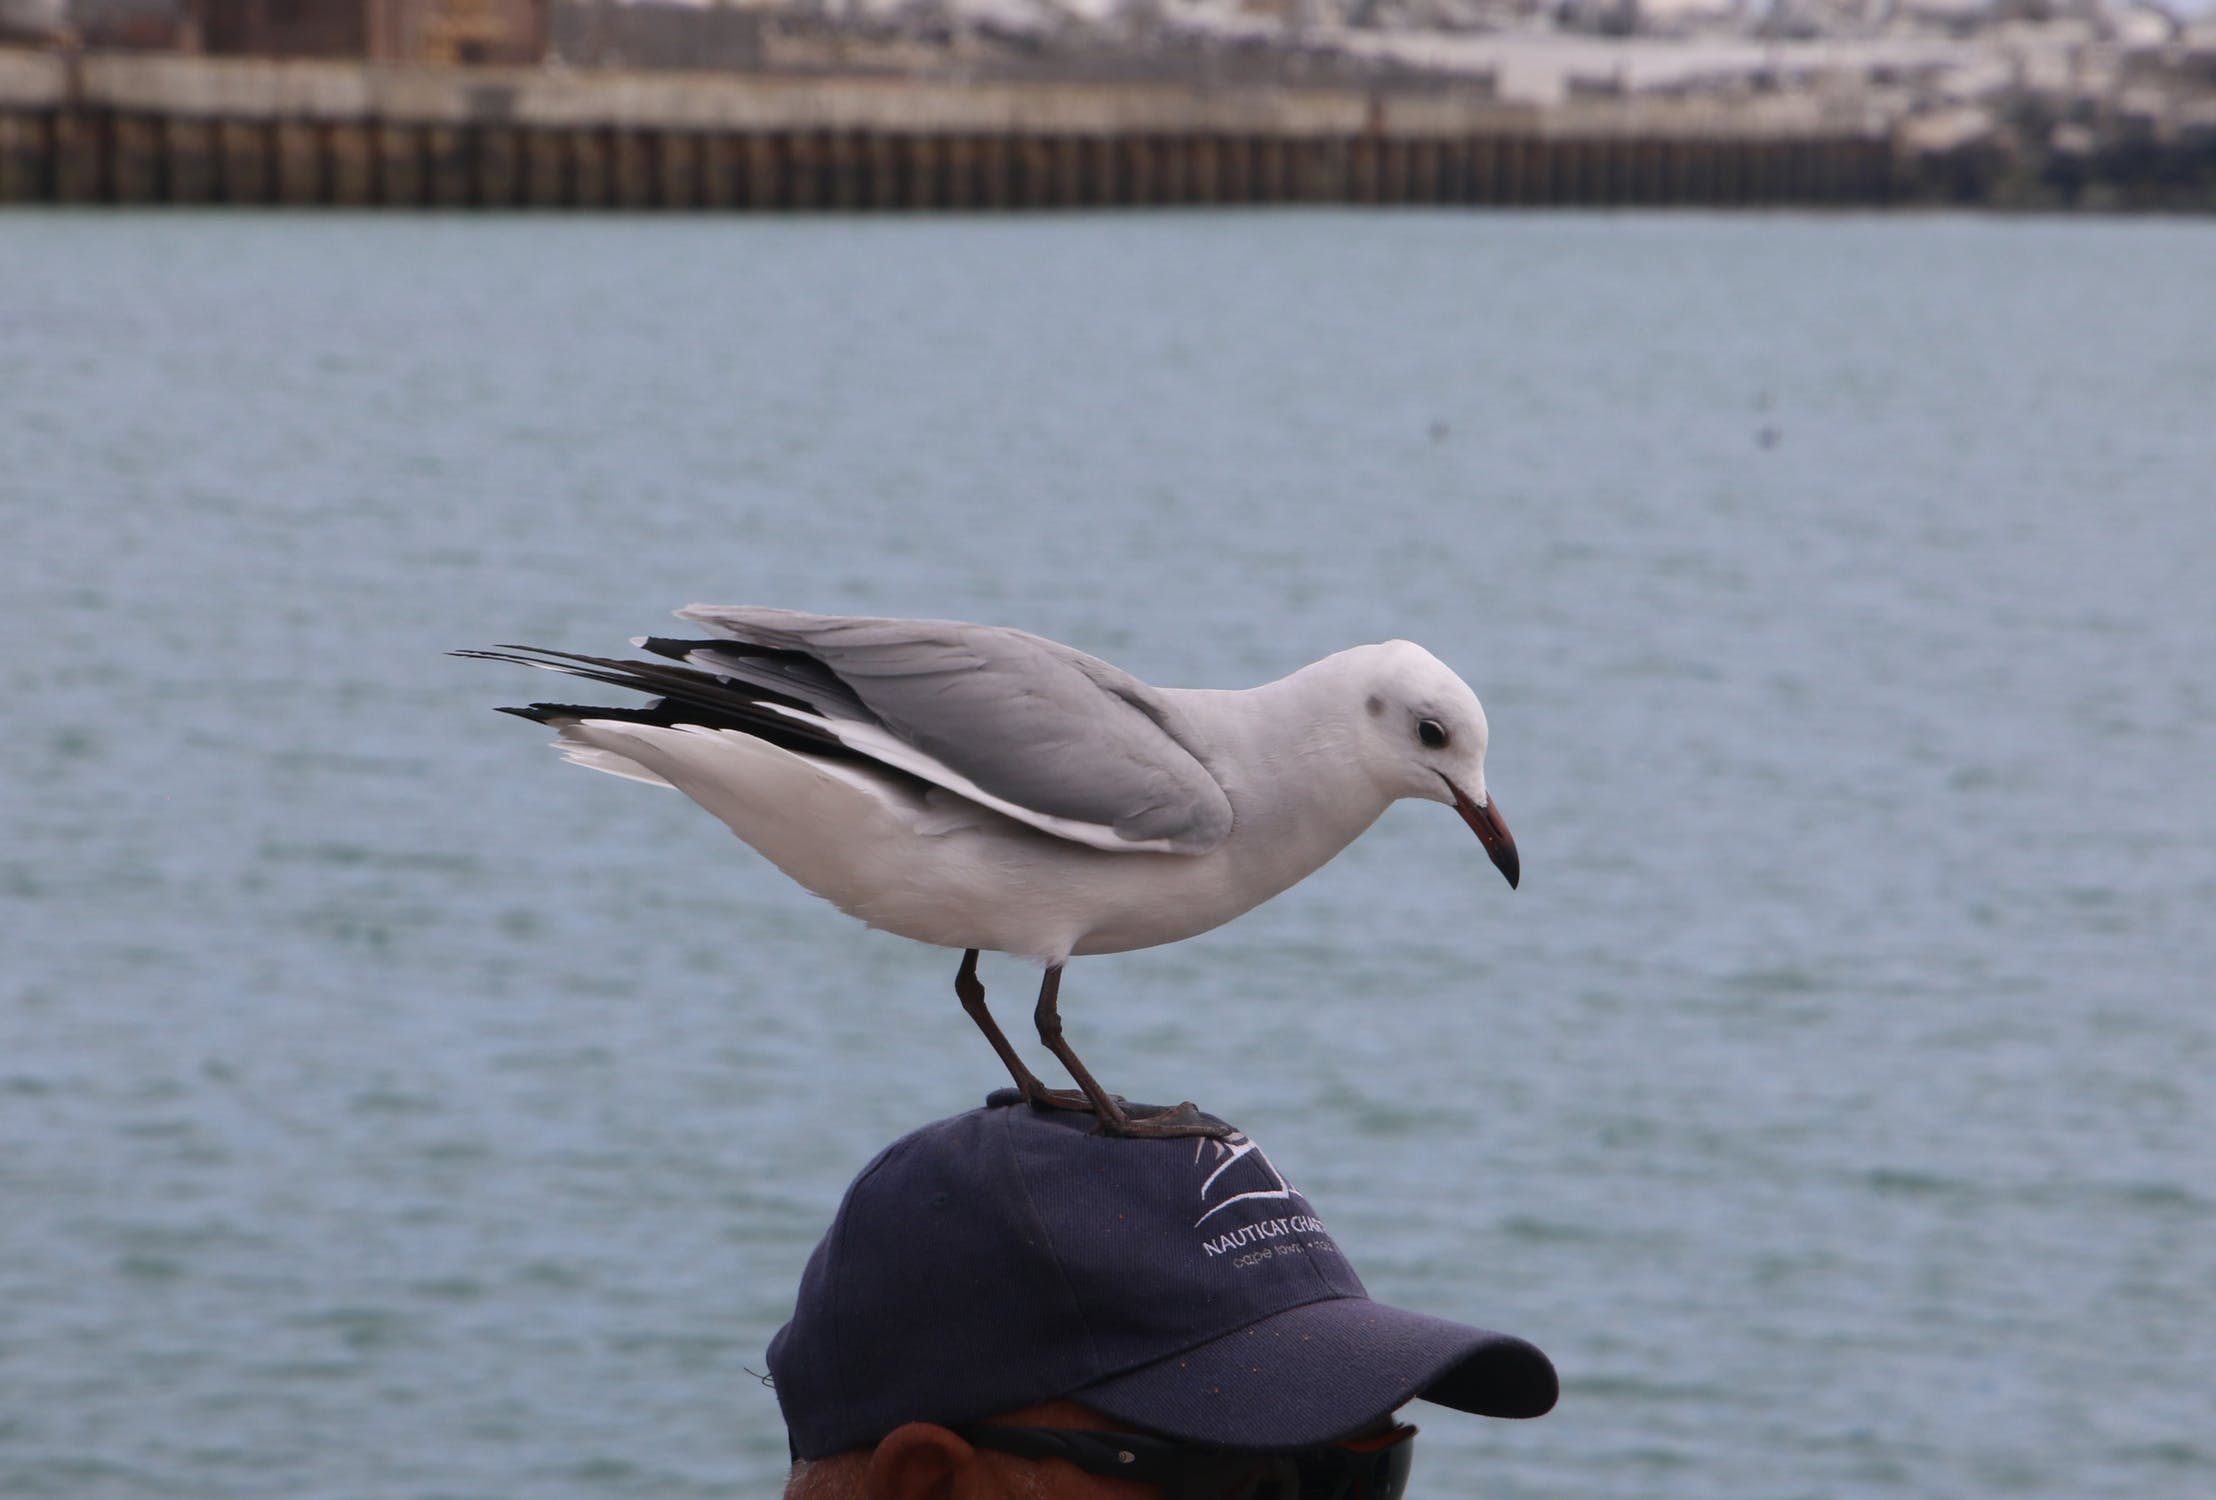 Seagull plays on the head photo